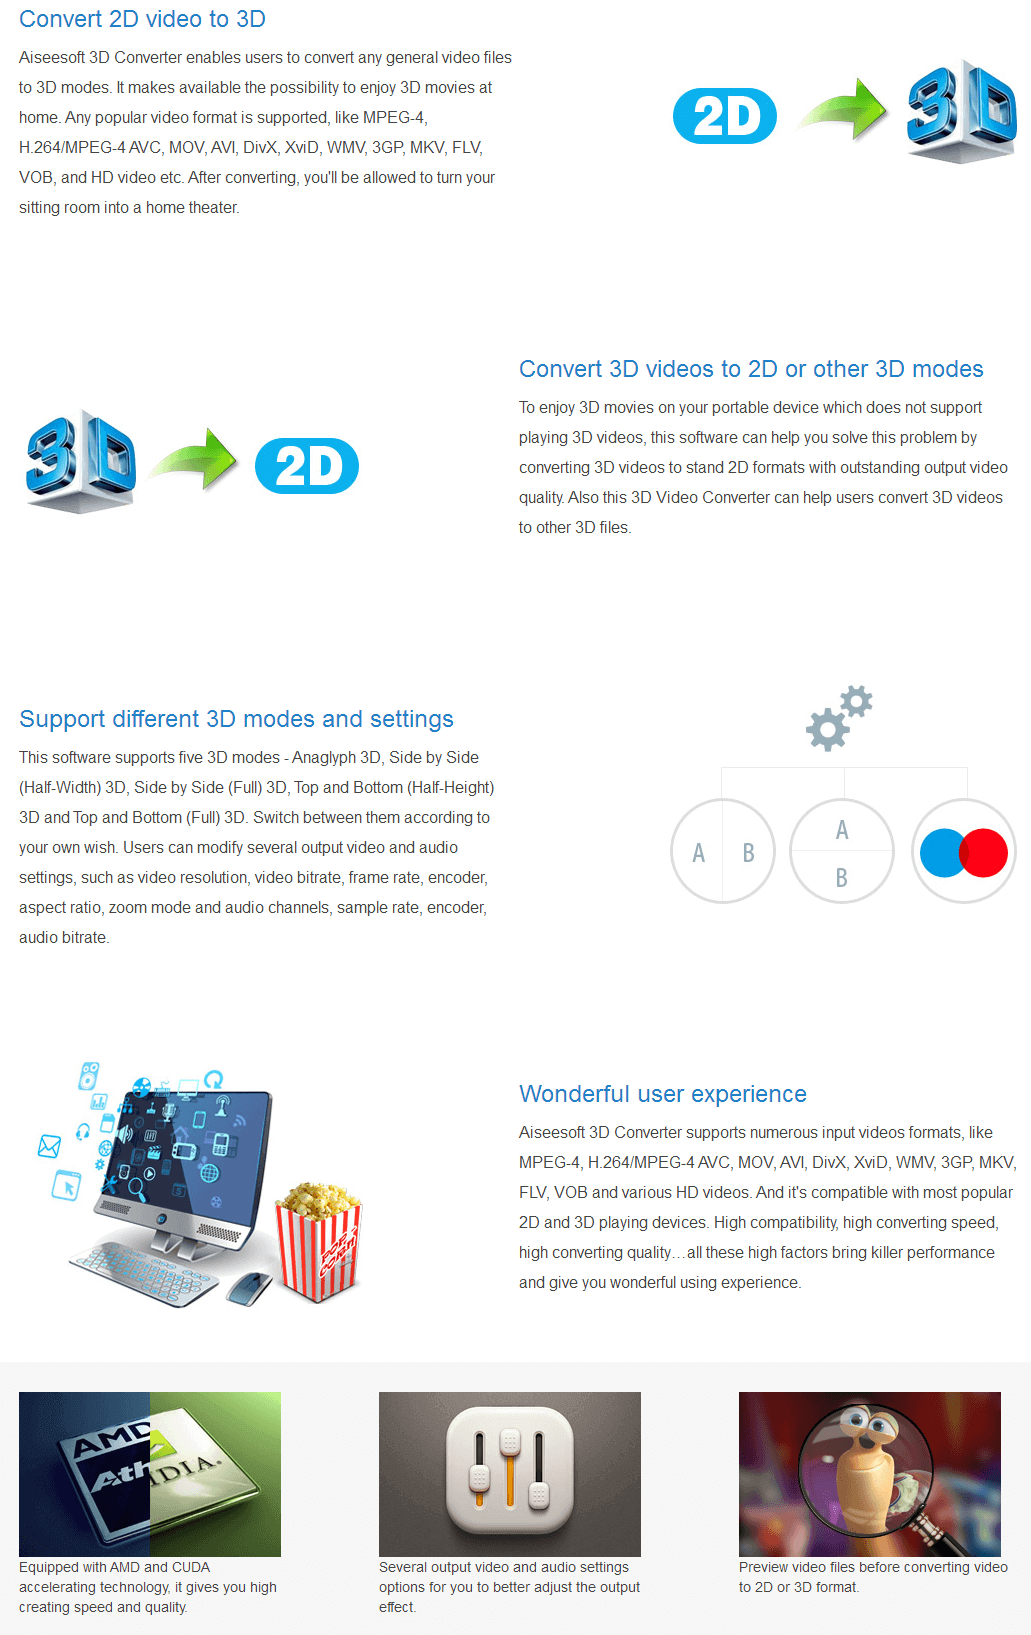 Aiseesoft 3D Converter key Features